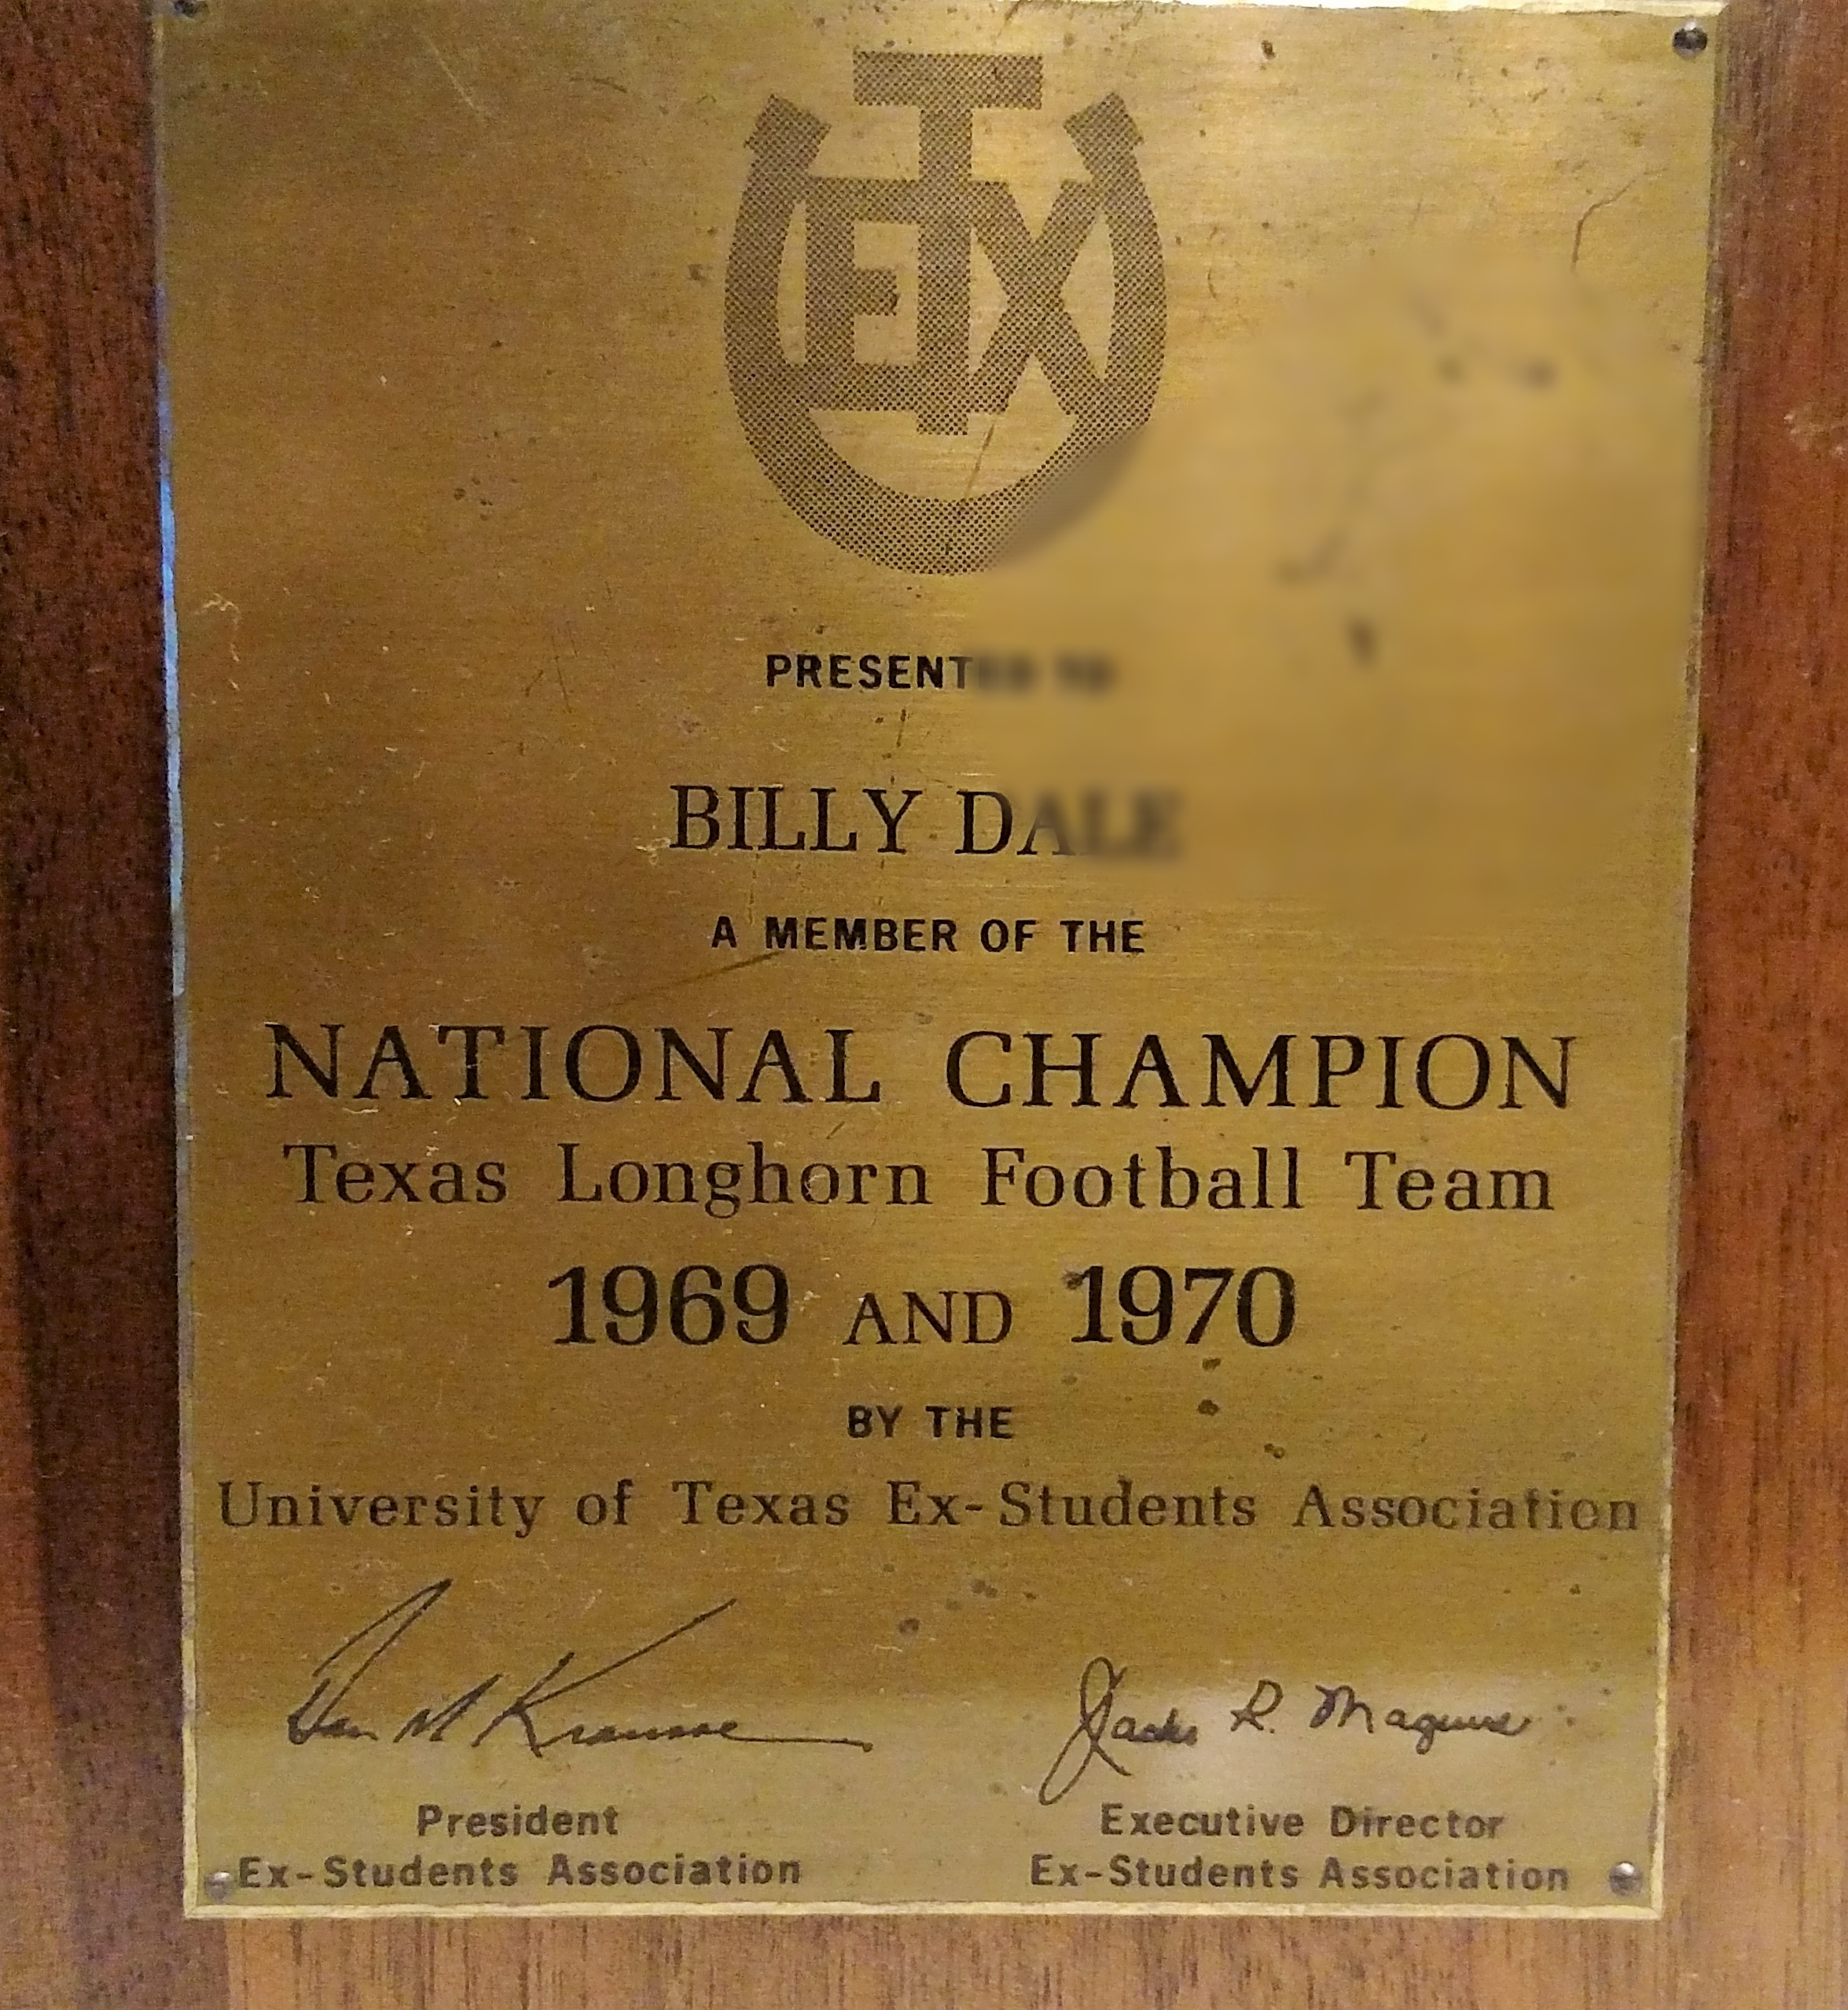 Outside of Plaque given to the 1969 and 1970 National Champs by the Texas Ex-Students Association